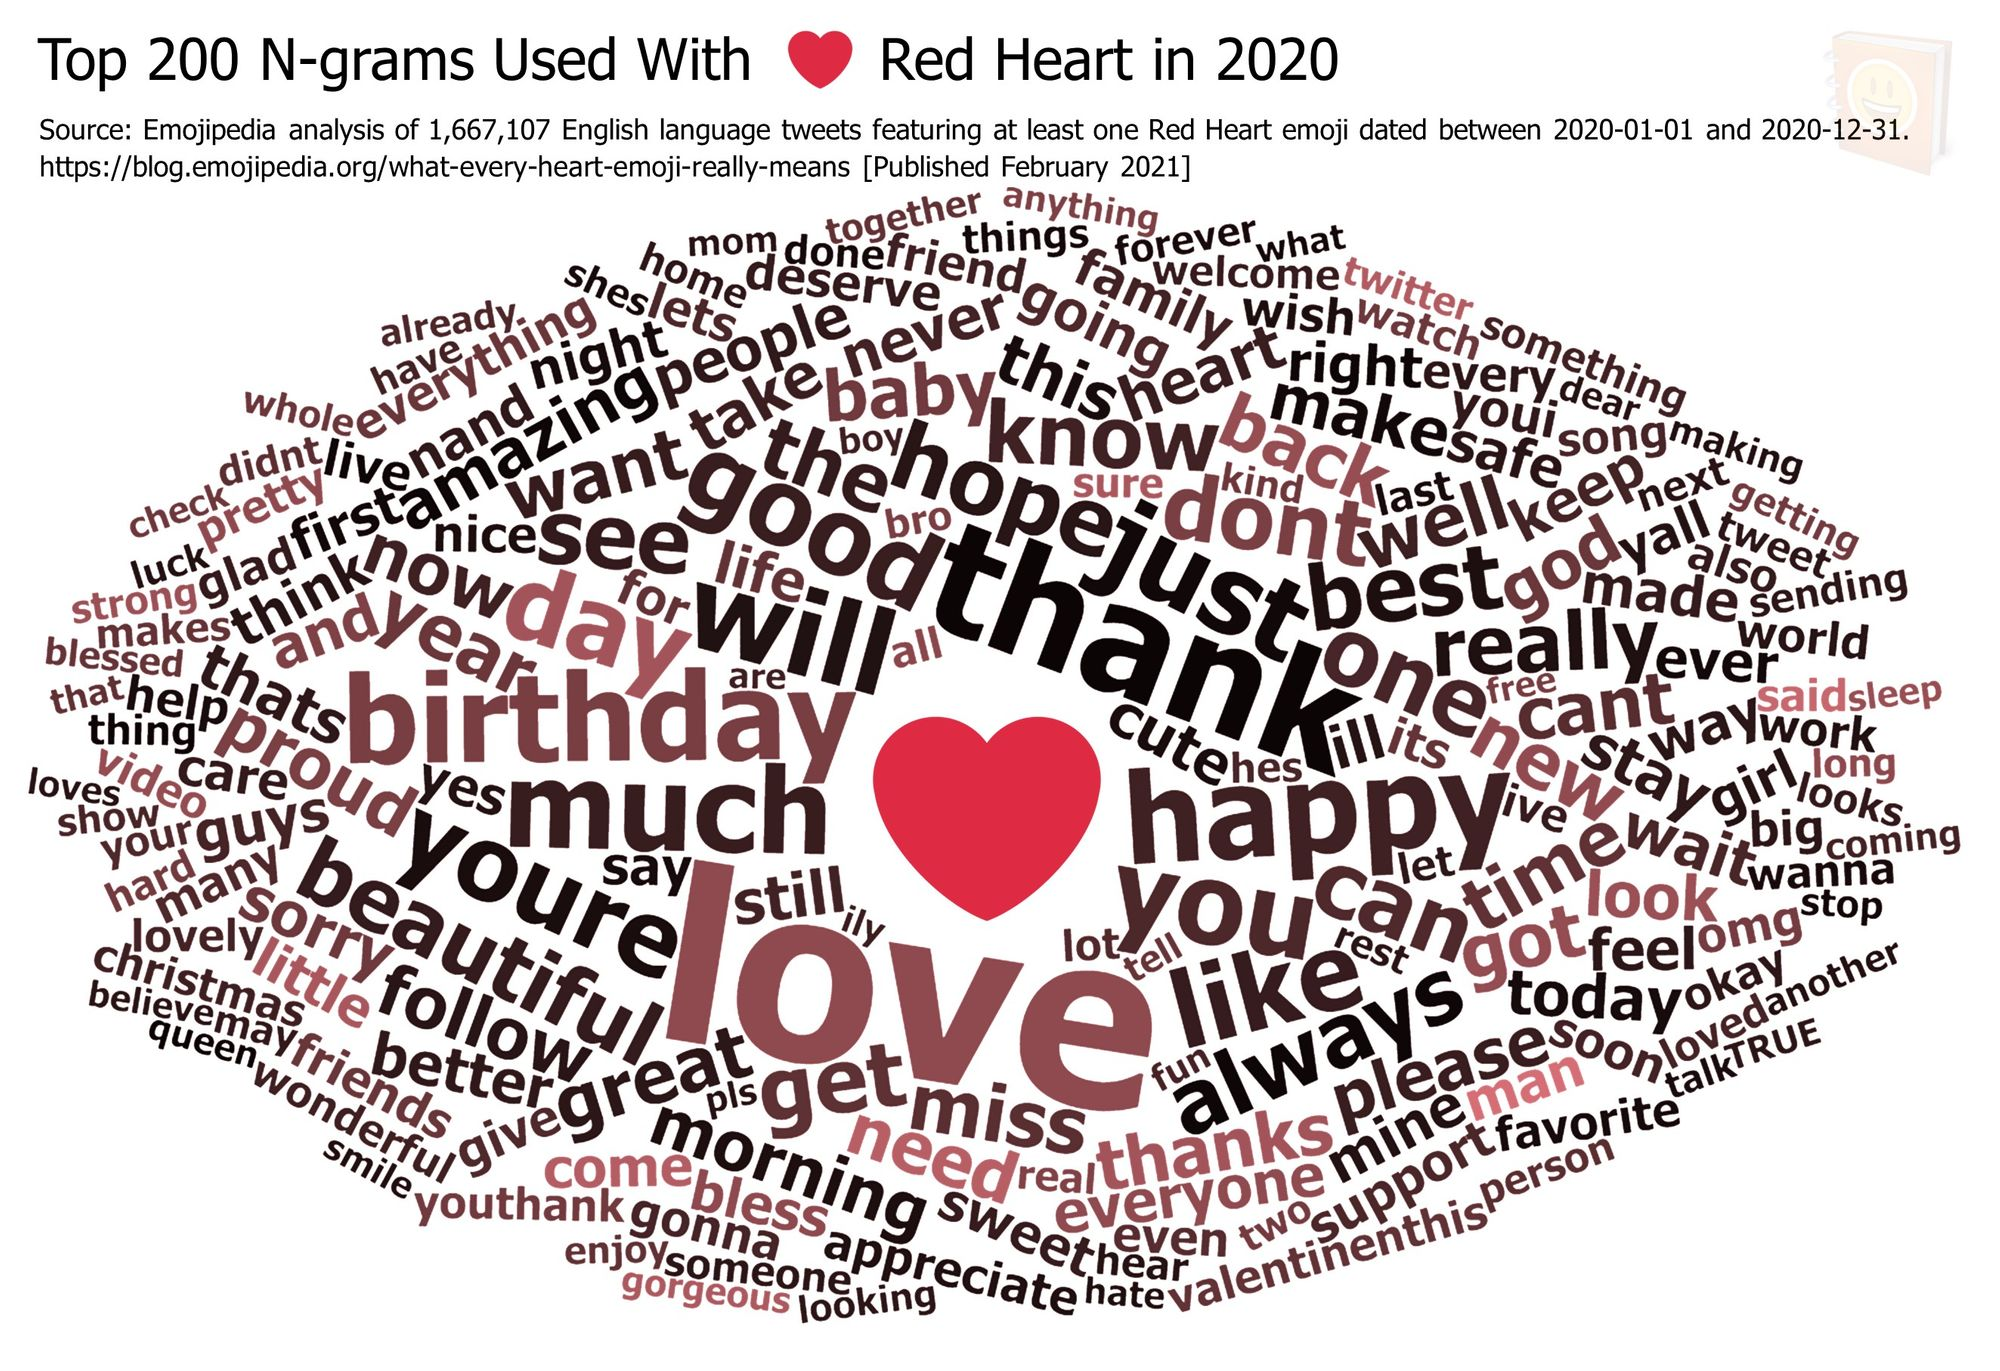 Emojipedia-Blog---What-Every-Heart-Emoji-Really-Means---Top-200-N-grams-Used-With-------Red-Heart-in-2020